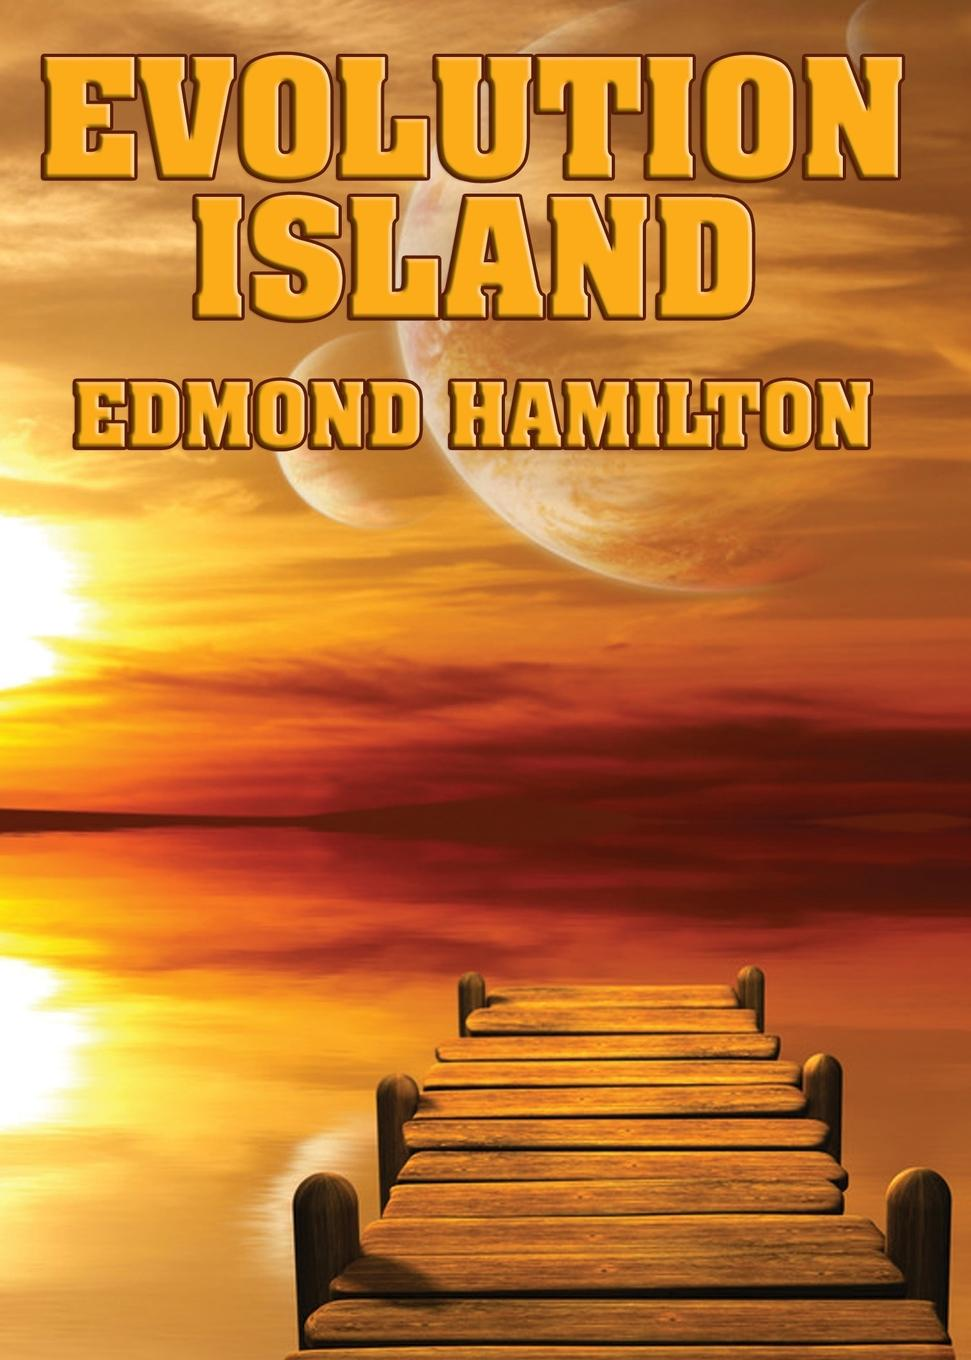 Edmond Hamilton Evolution Island edmond hamilton the best of edmond hamilton